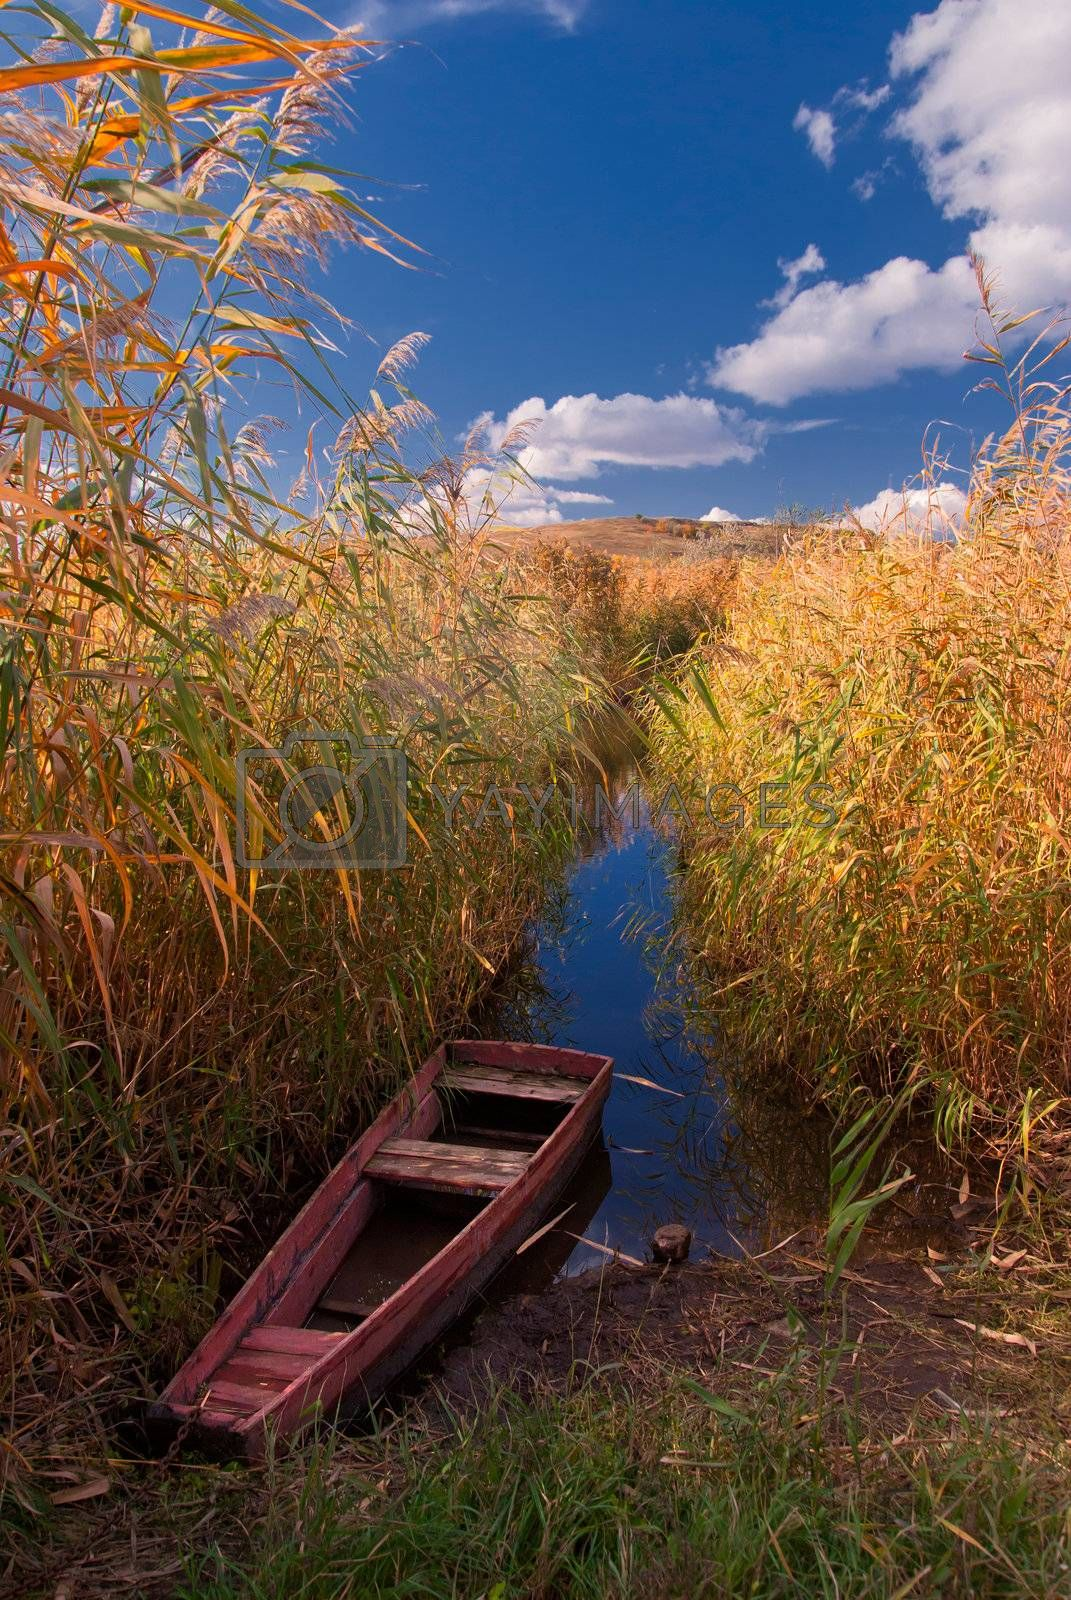 The lonely boat on the river, autumn landscape